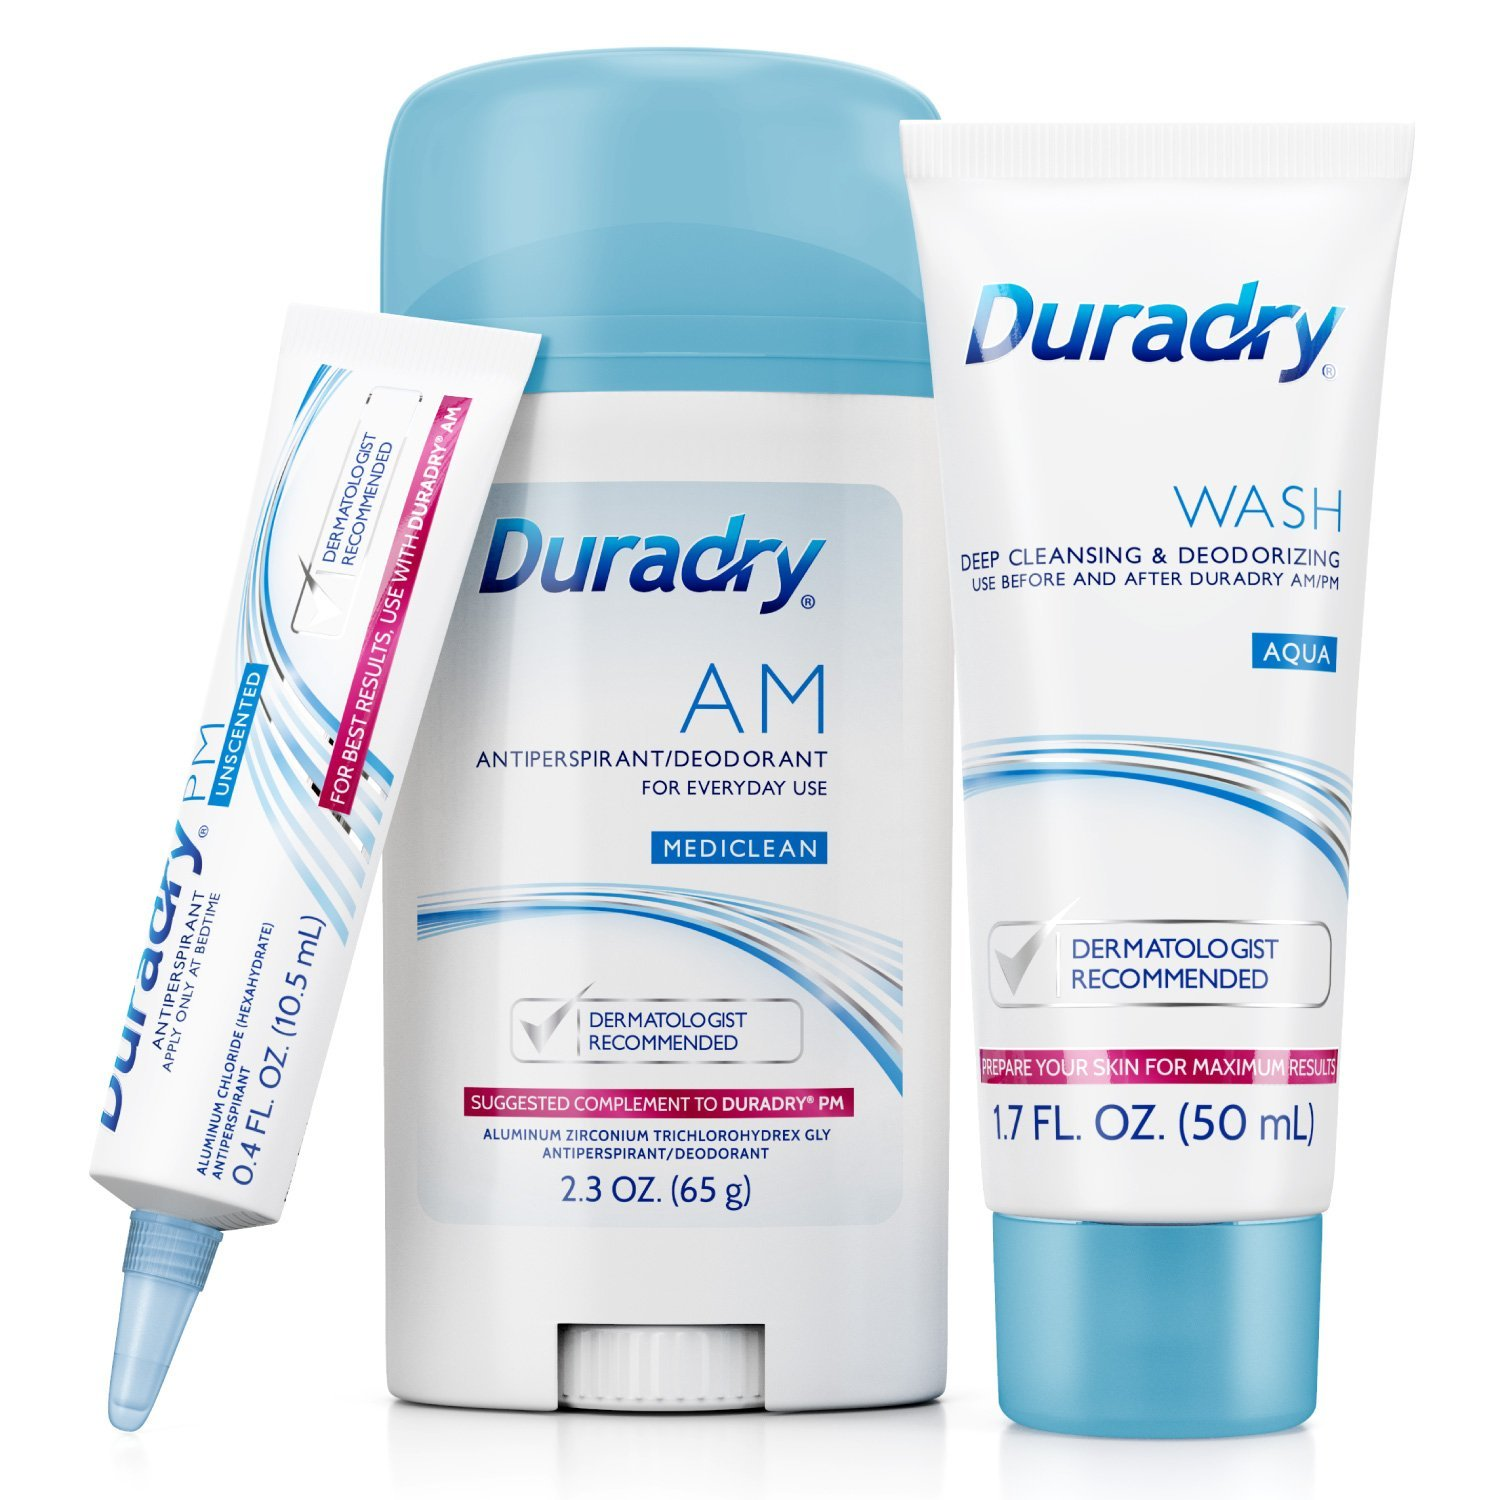 Duradry 3-Step Protection System - Prescription Strength Antiperspirant Deodorants Specially Formulated For Excessive Sweating or Hyperhidrosis. Block Sweat and Odor